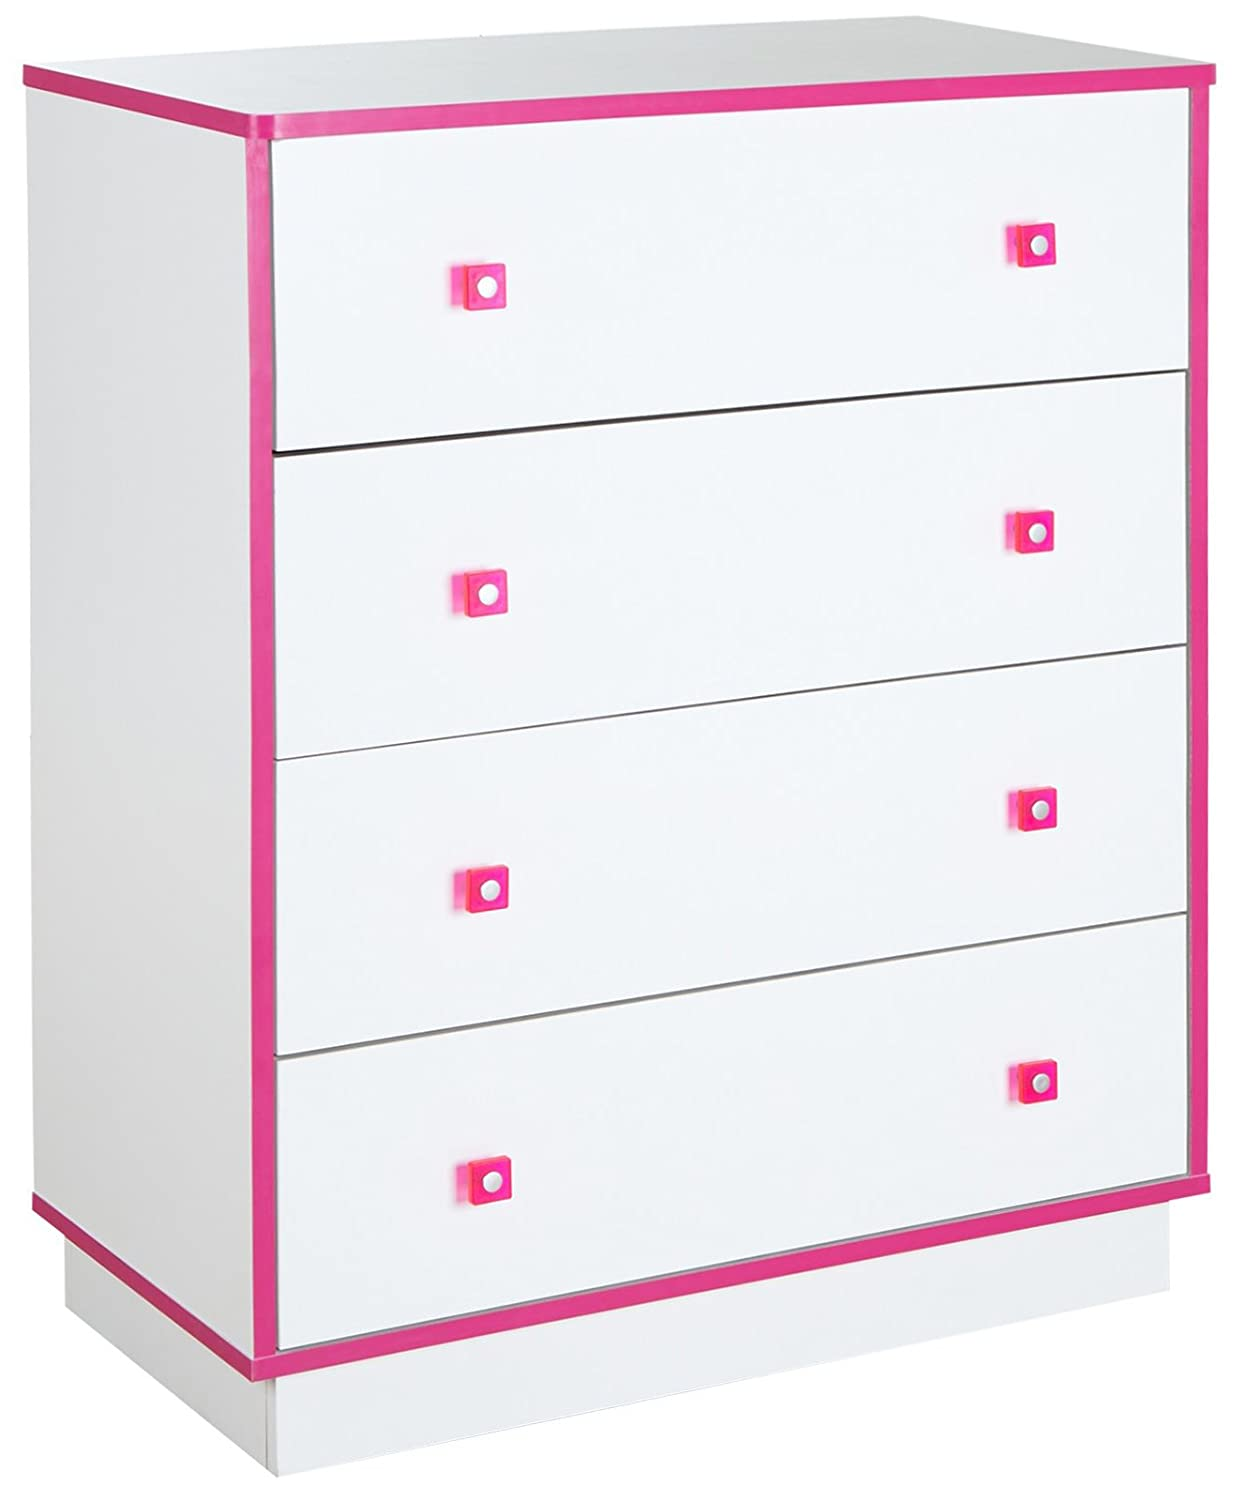 South Shore Furniture Logik 4-Drawers Chest, Pure White and Pink 9039034